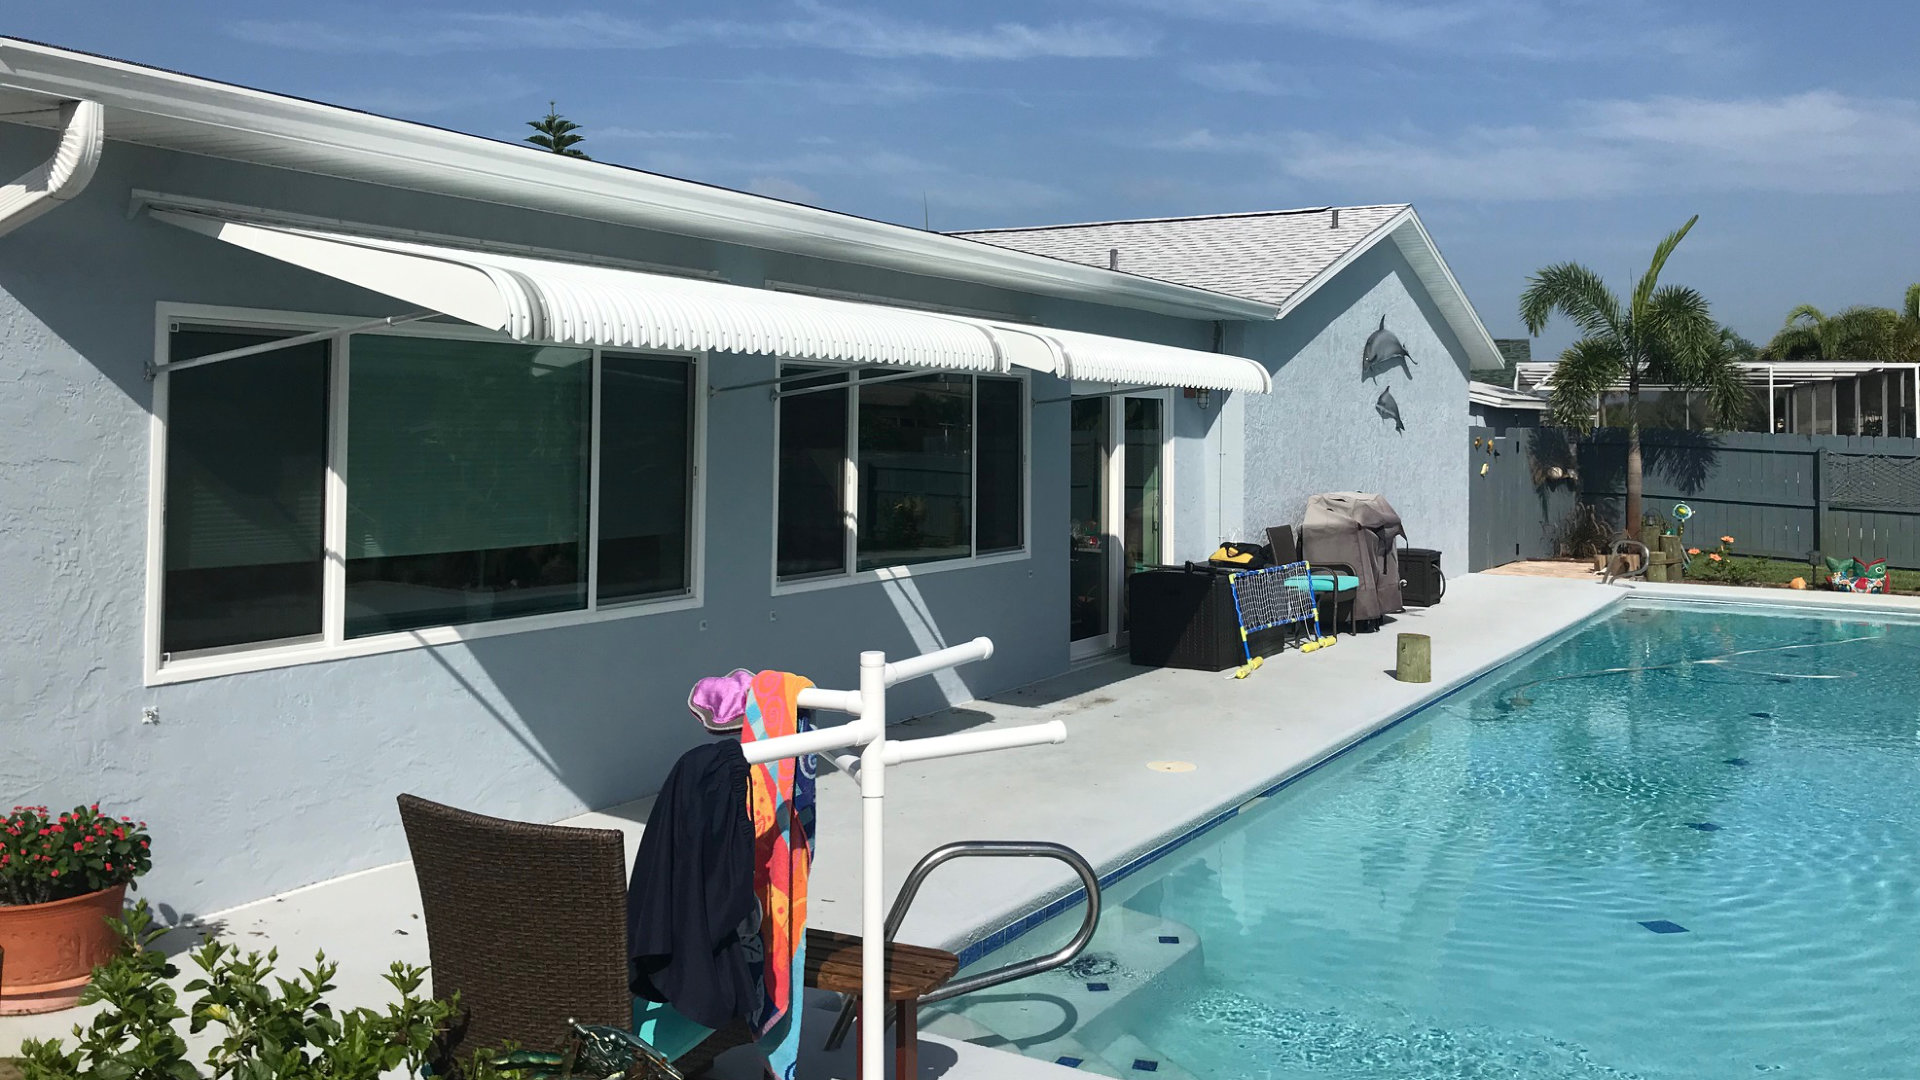 new poolside window aluminum awnings